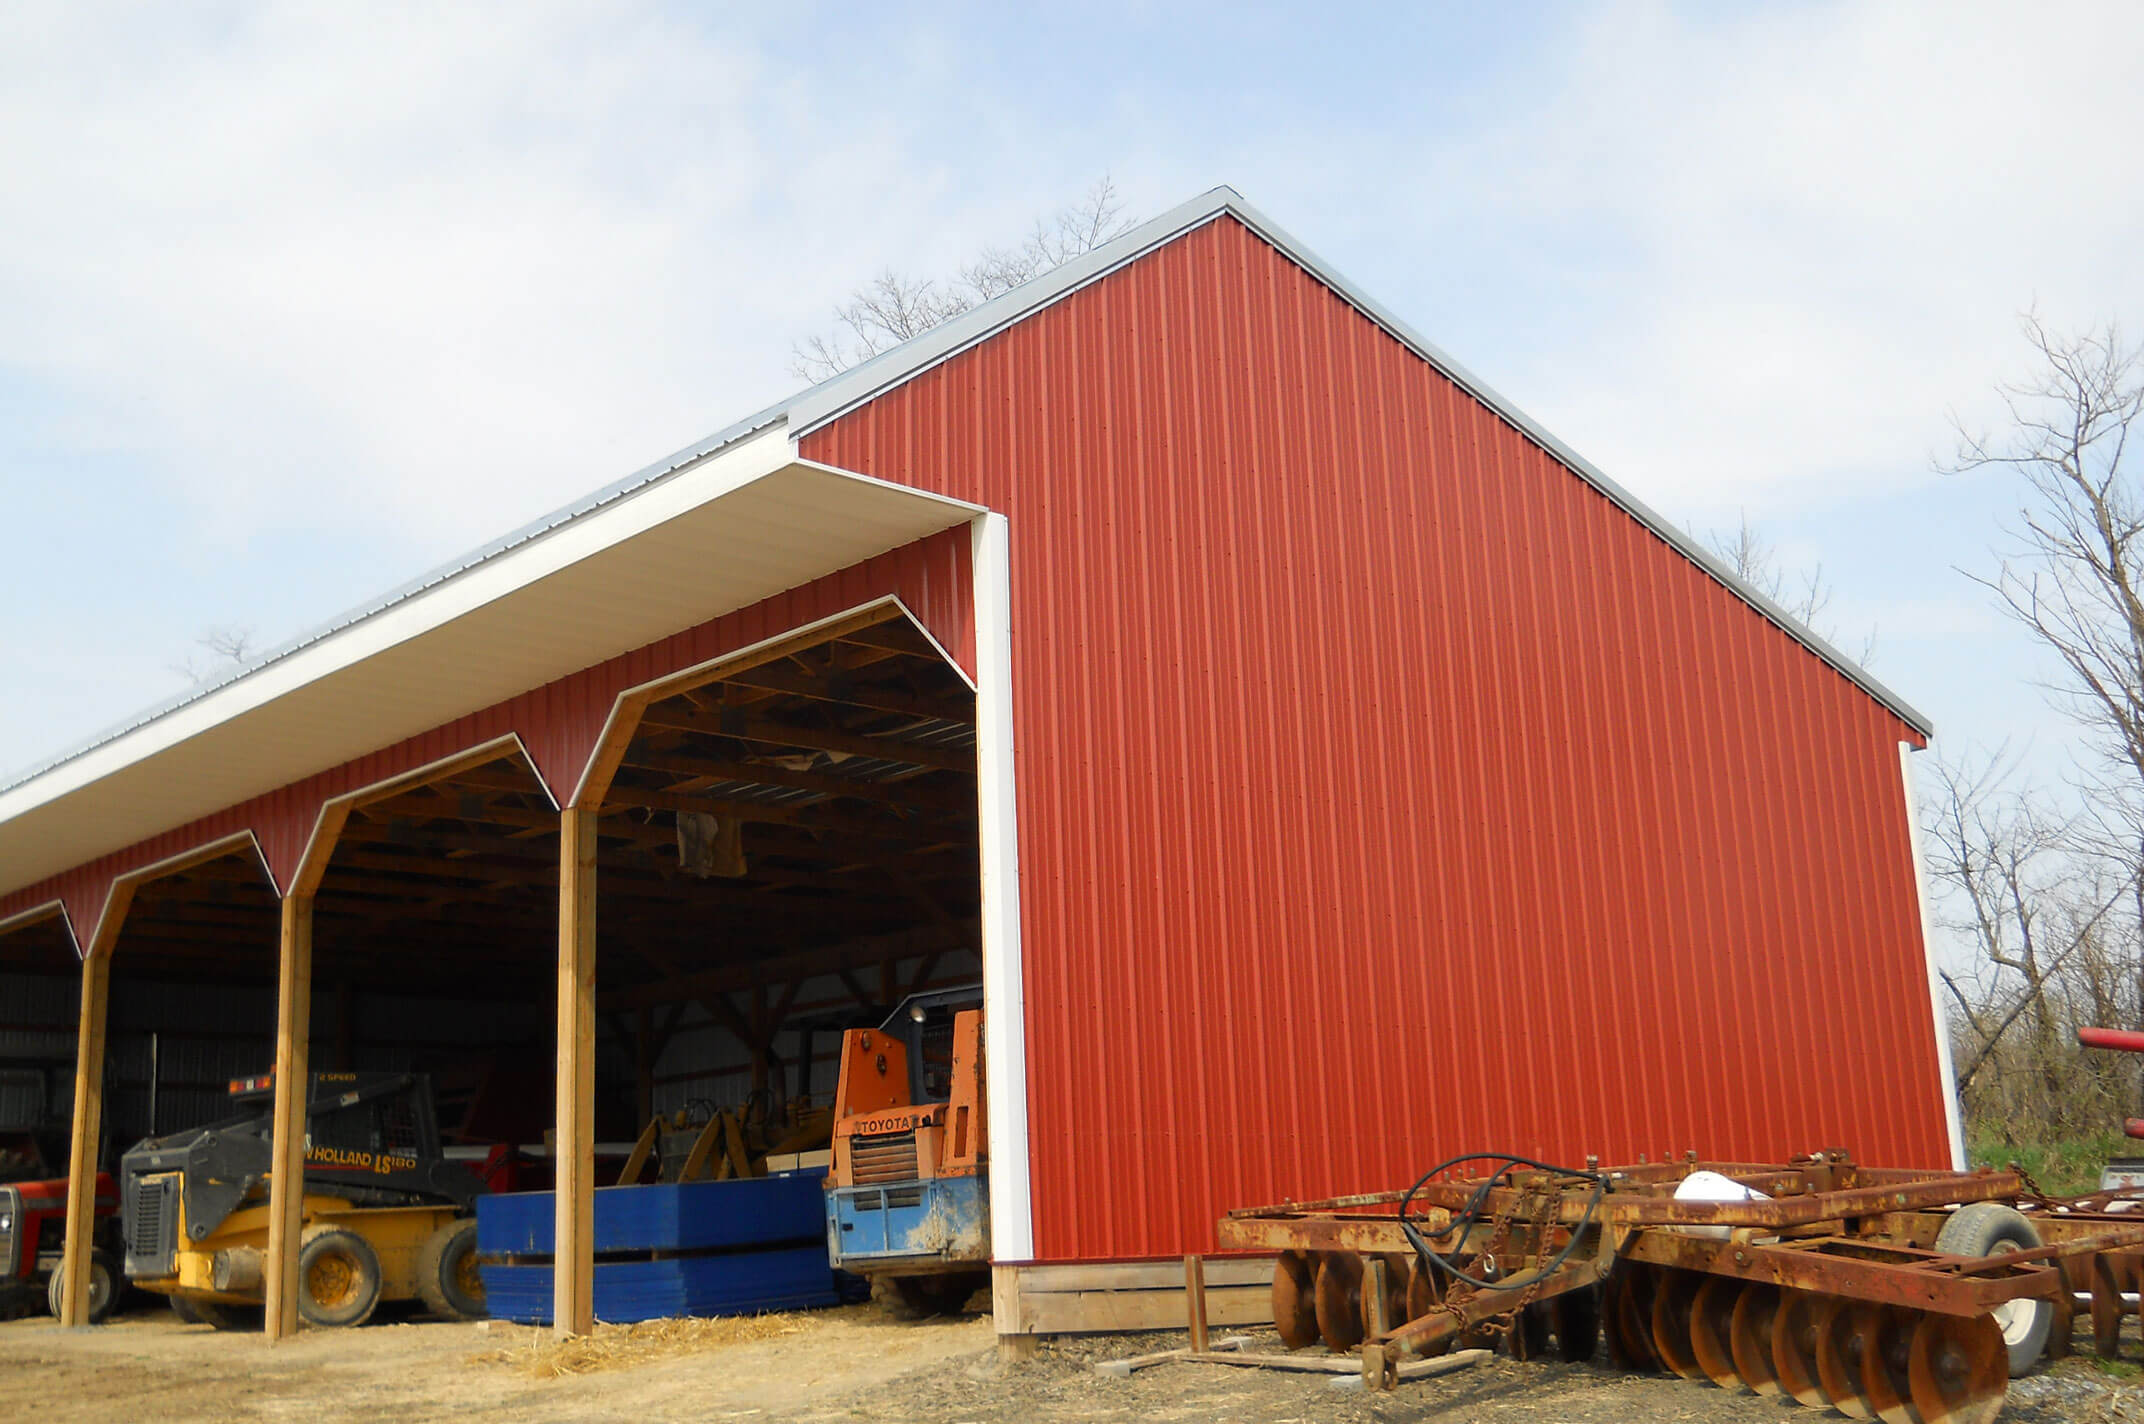 3 Sided Pole Building With Shed Style Roof Project By Apm